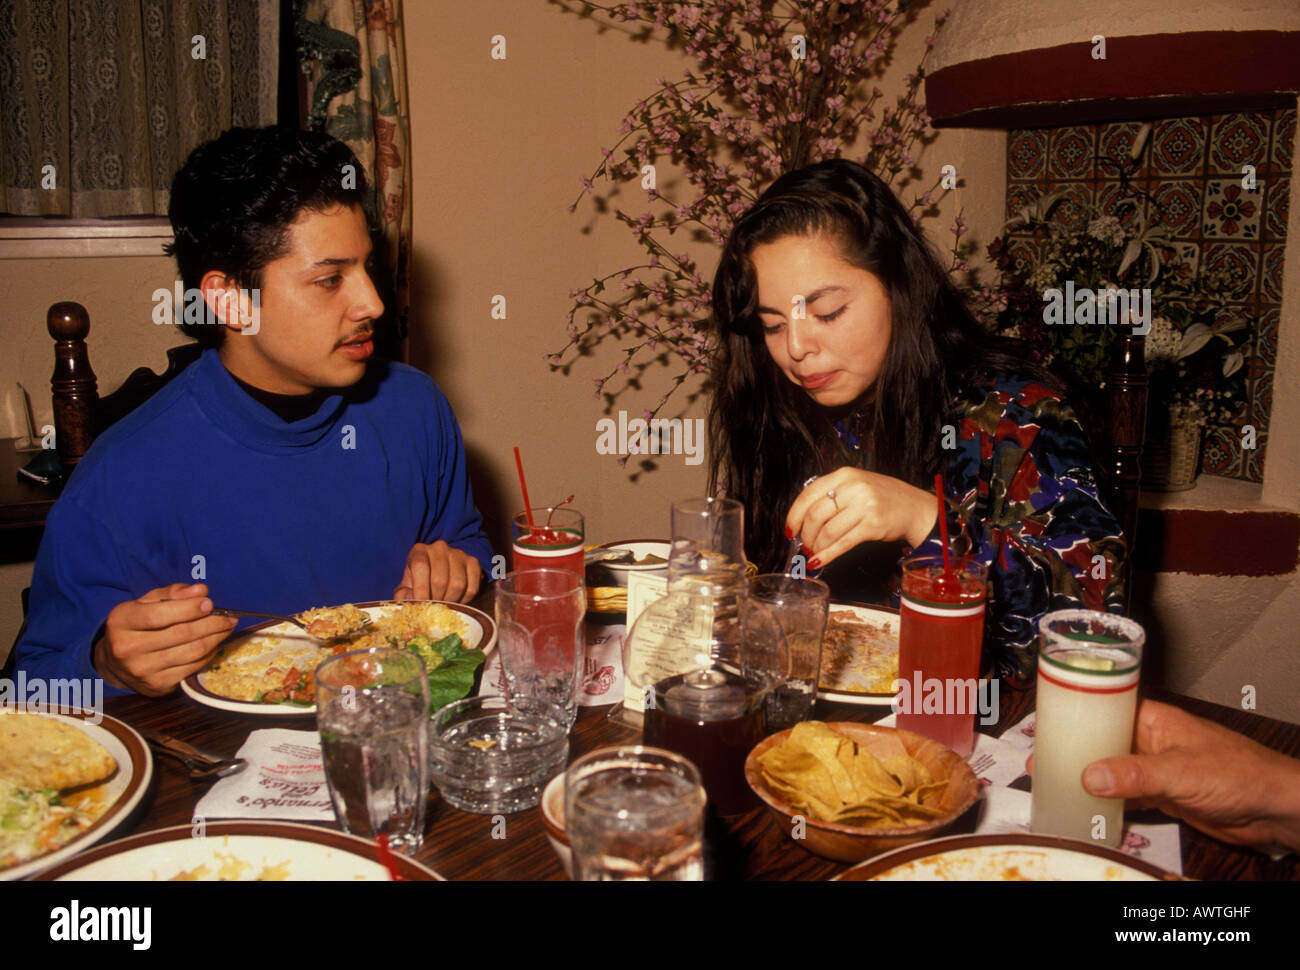 Guatemalan People Brother And Sister Dining At Mexican Restaurant In The City Of Novato California United